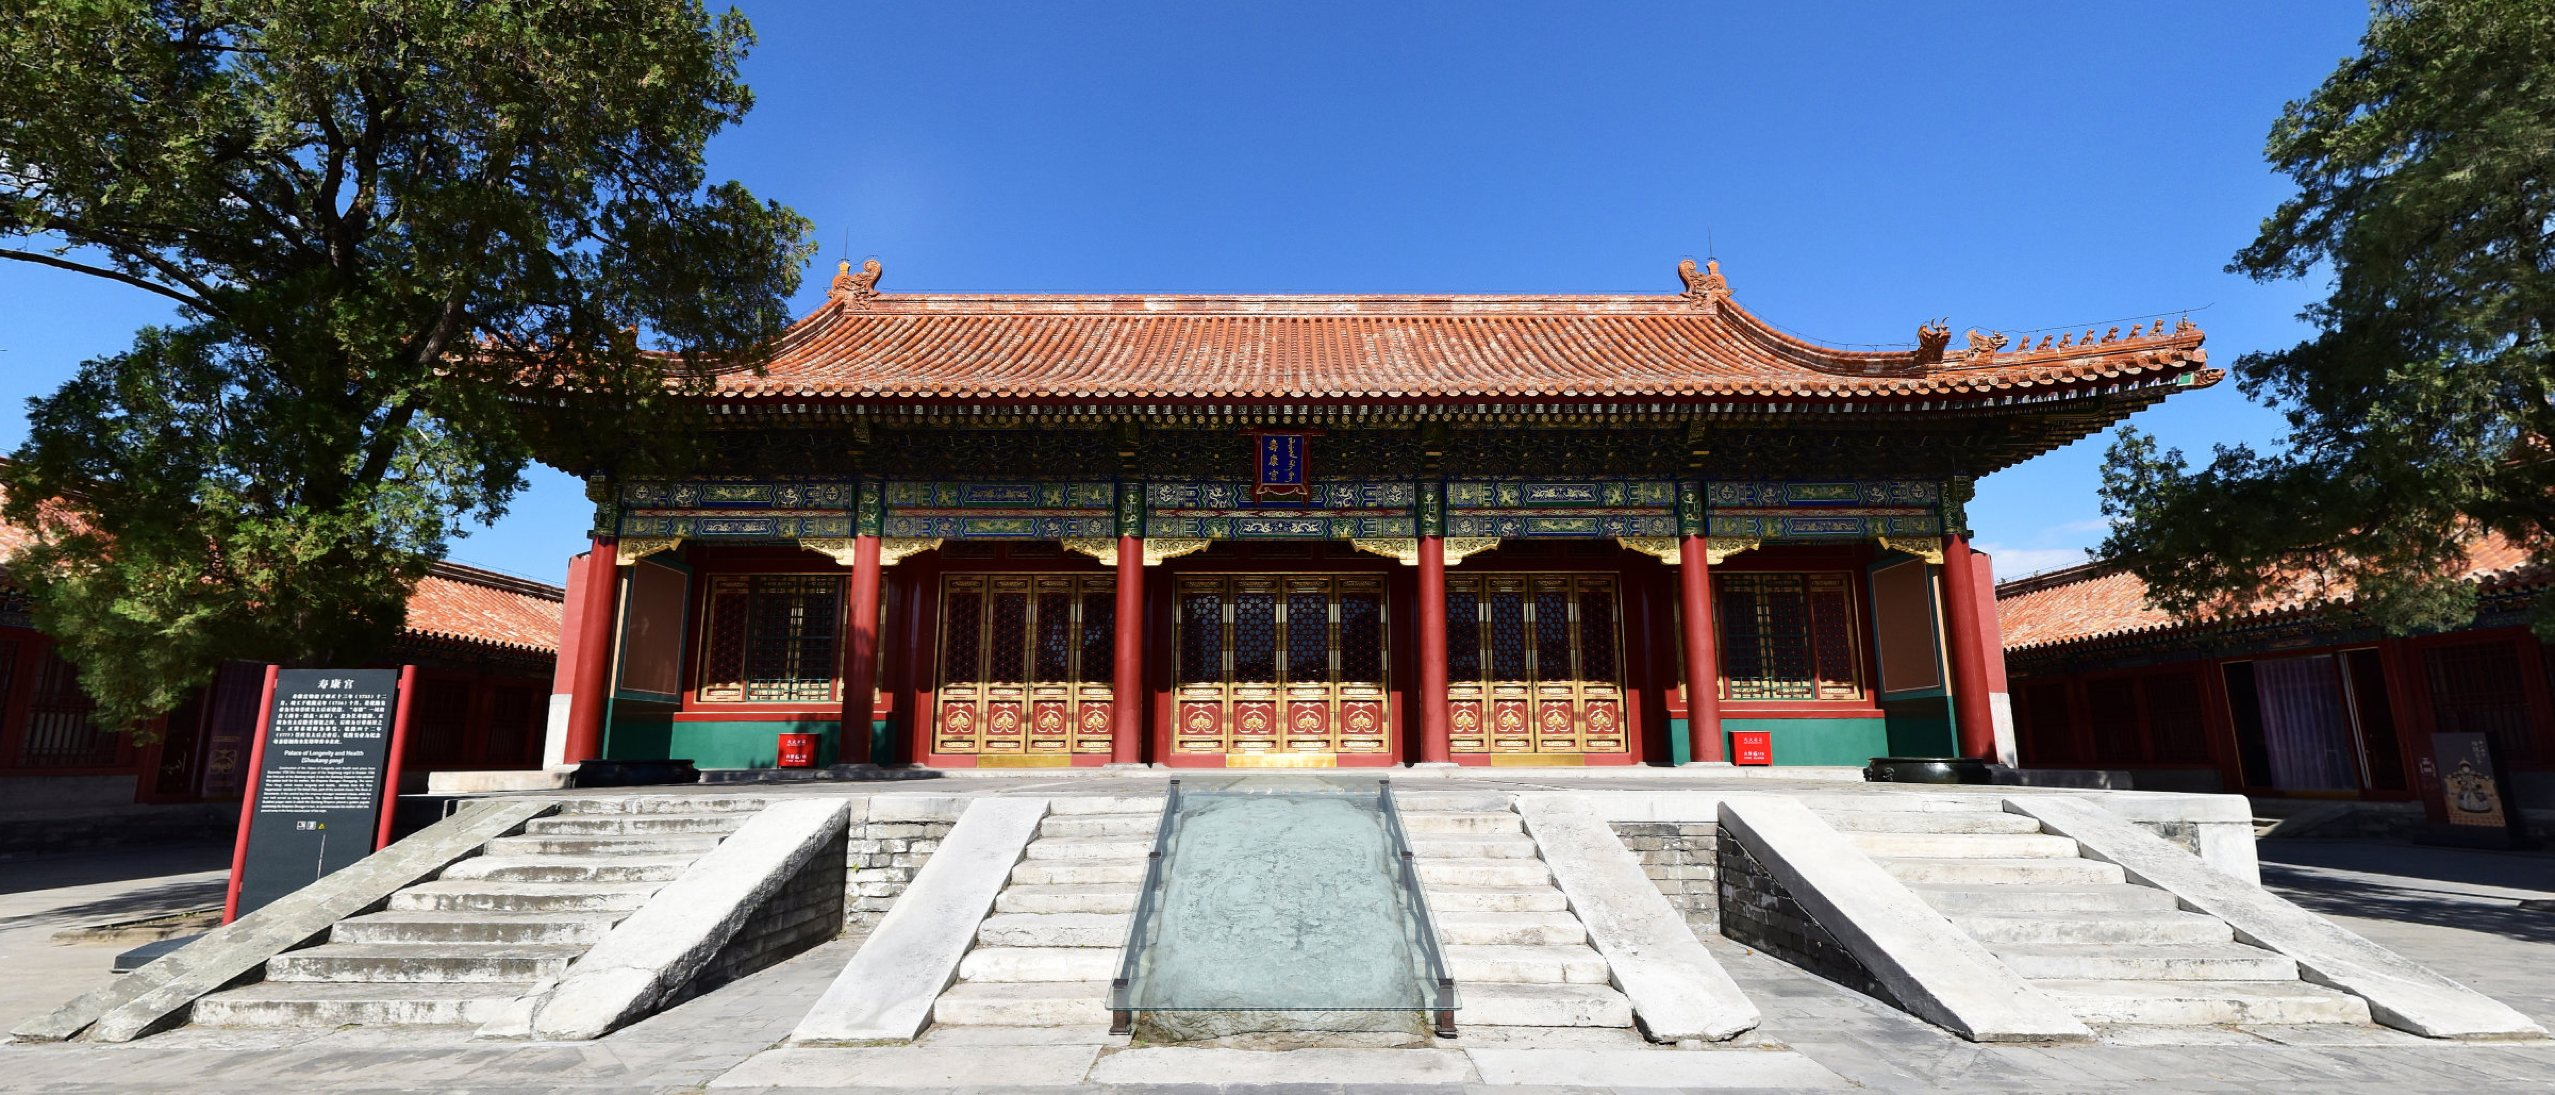 photo of a red palace structure with green decoration